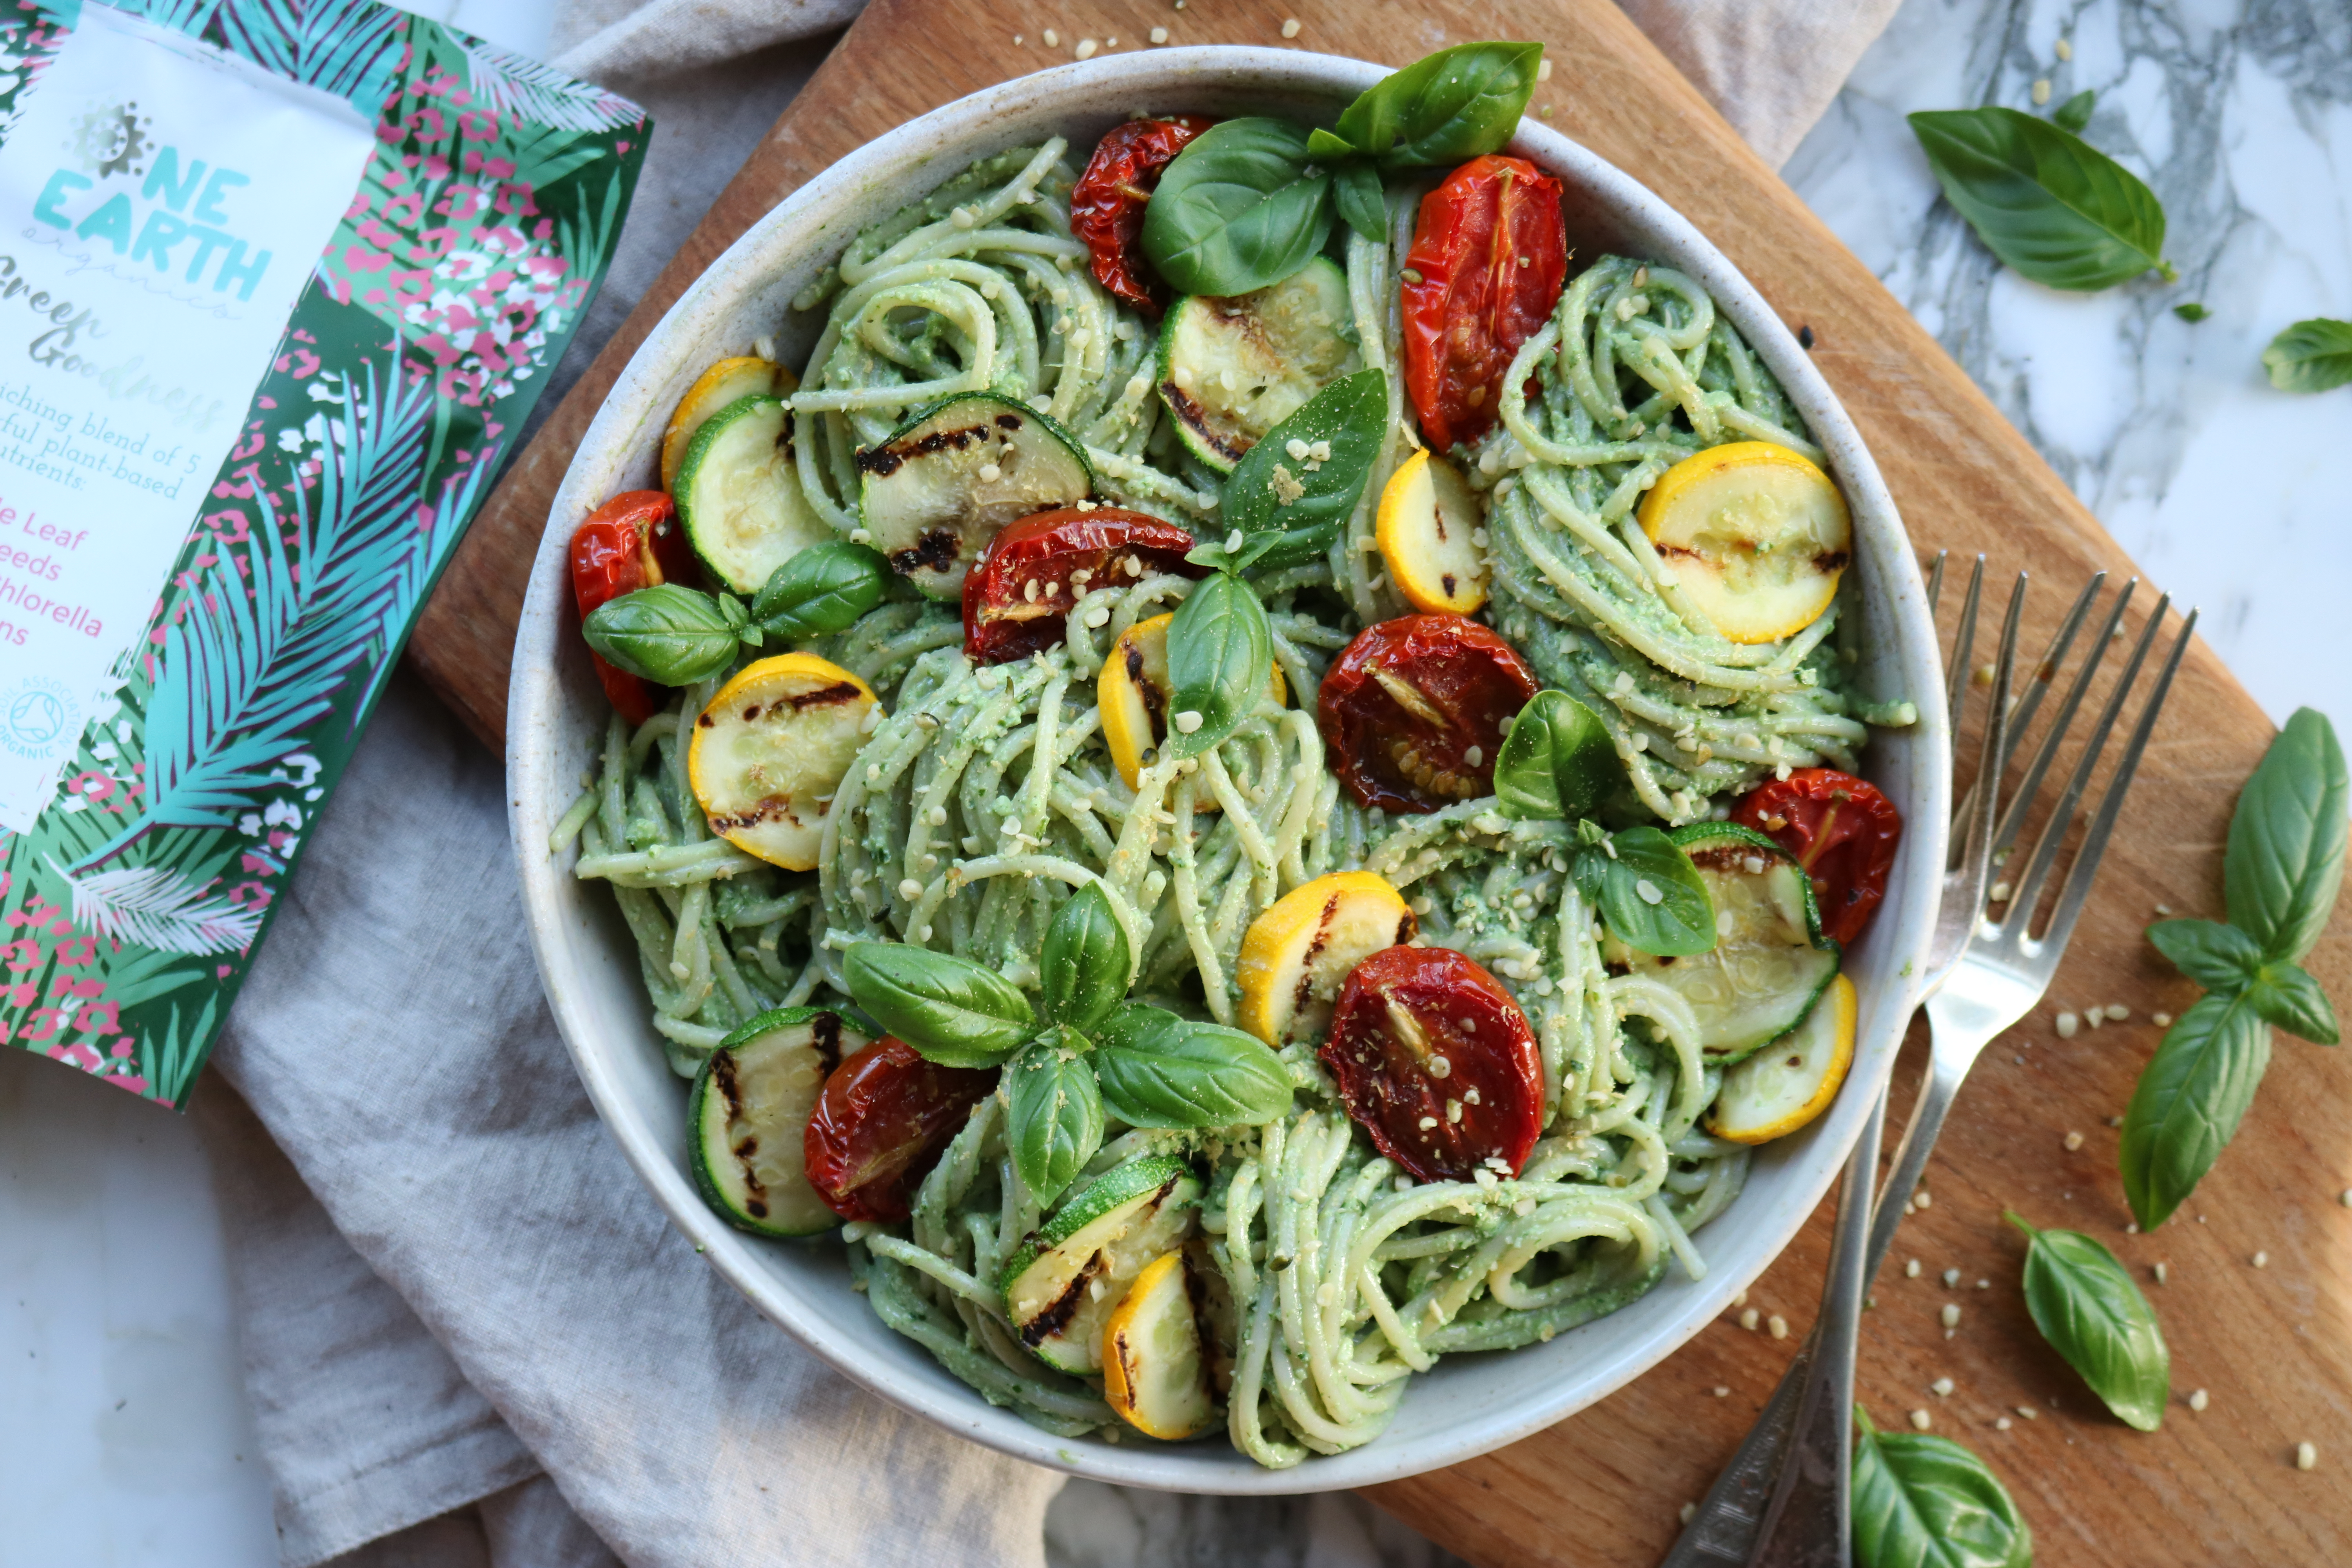 Green Goddess Macadamia Pesto Pasta